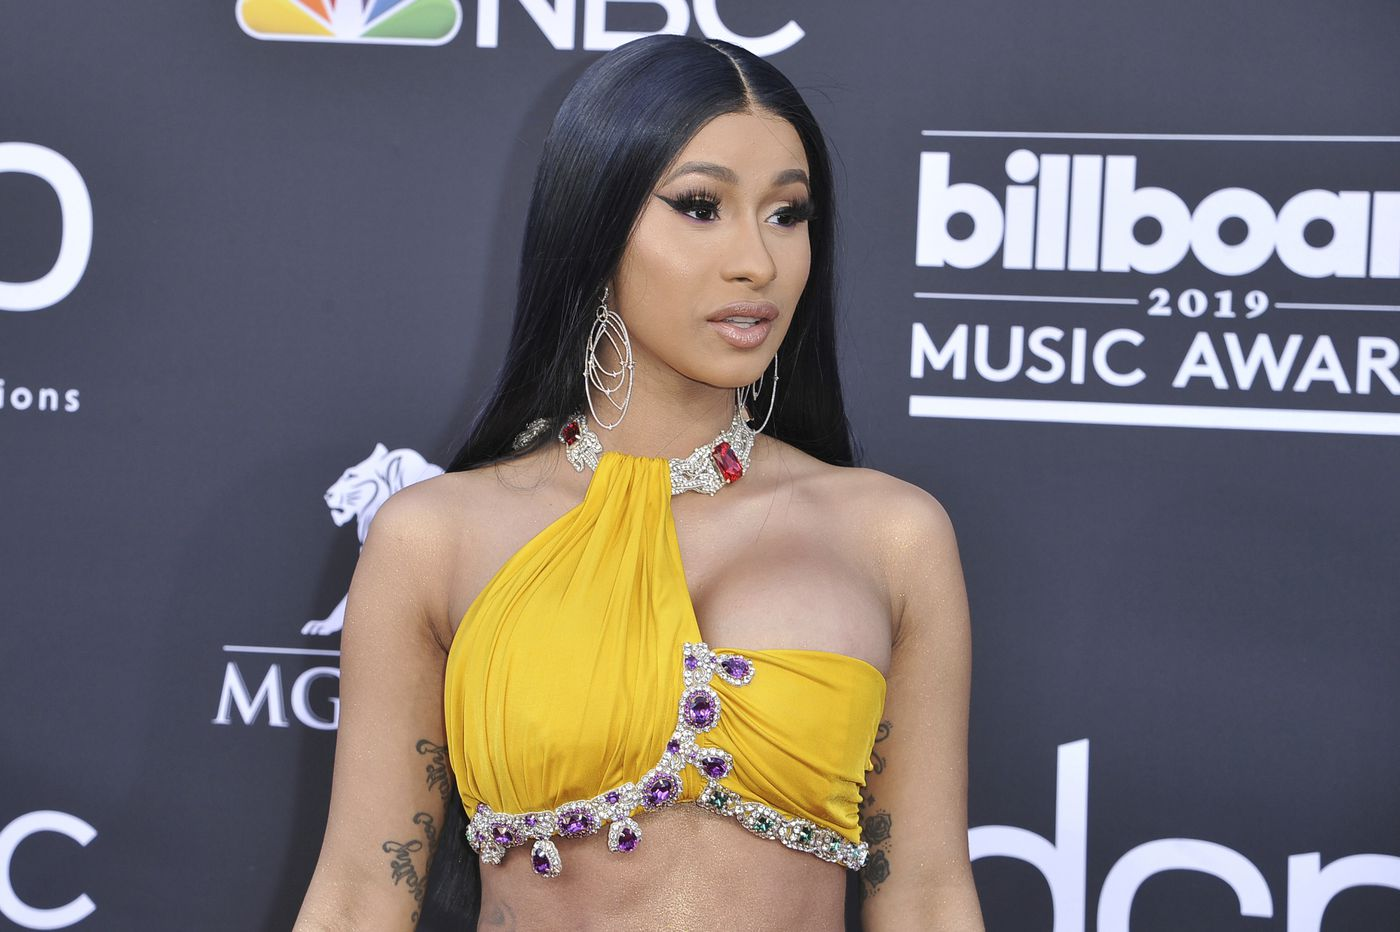 Dear Cardi B, Thank you for showing off your untoned tummy